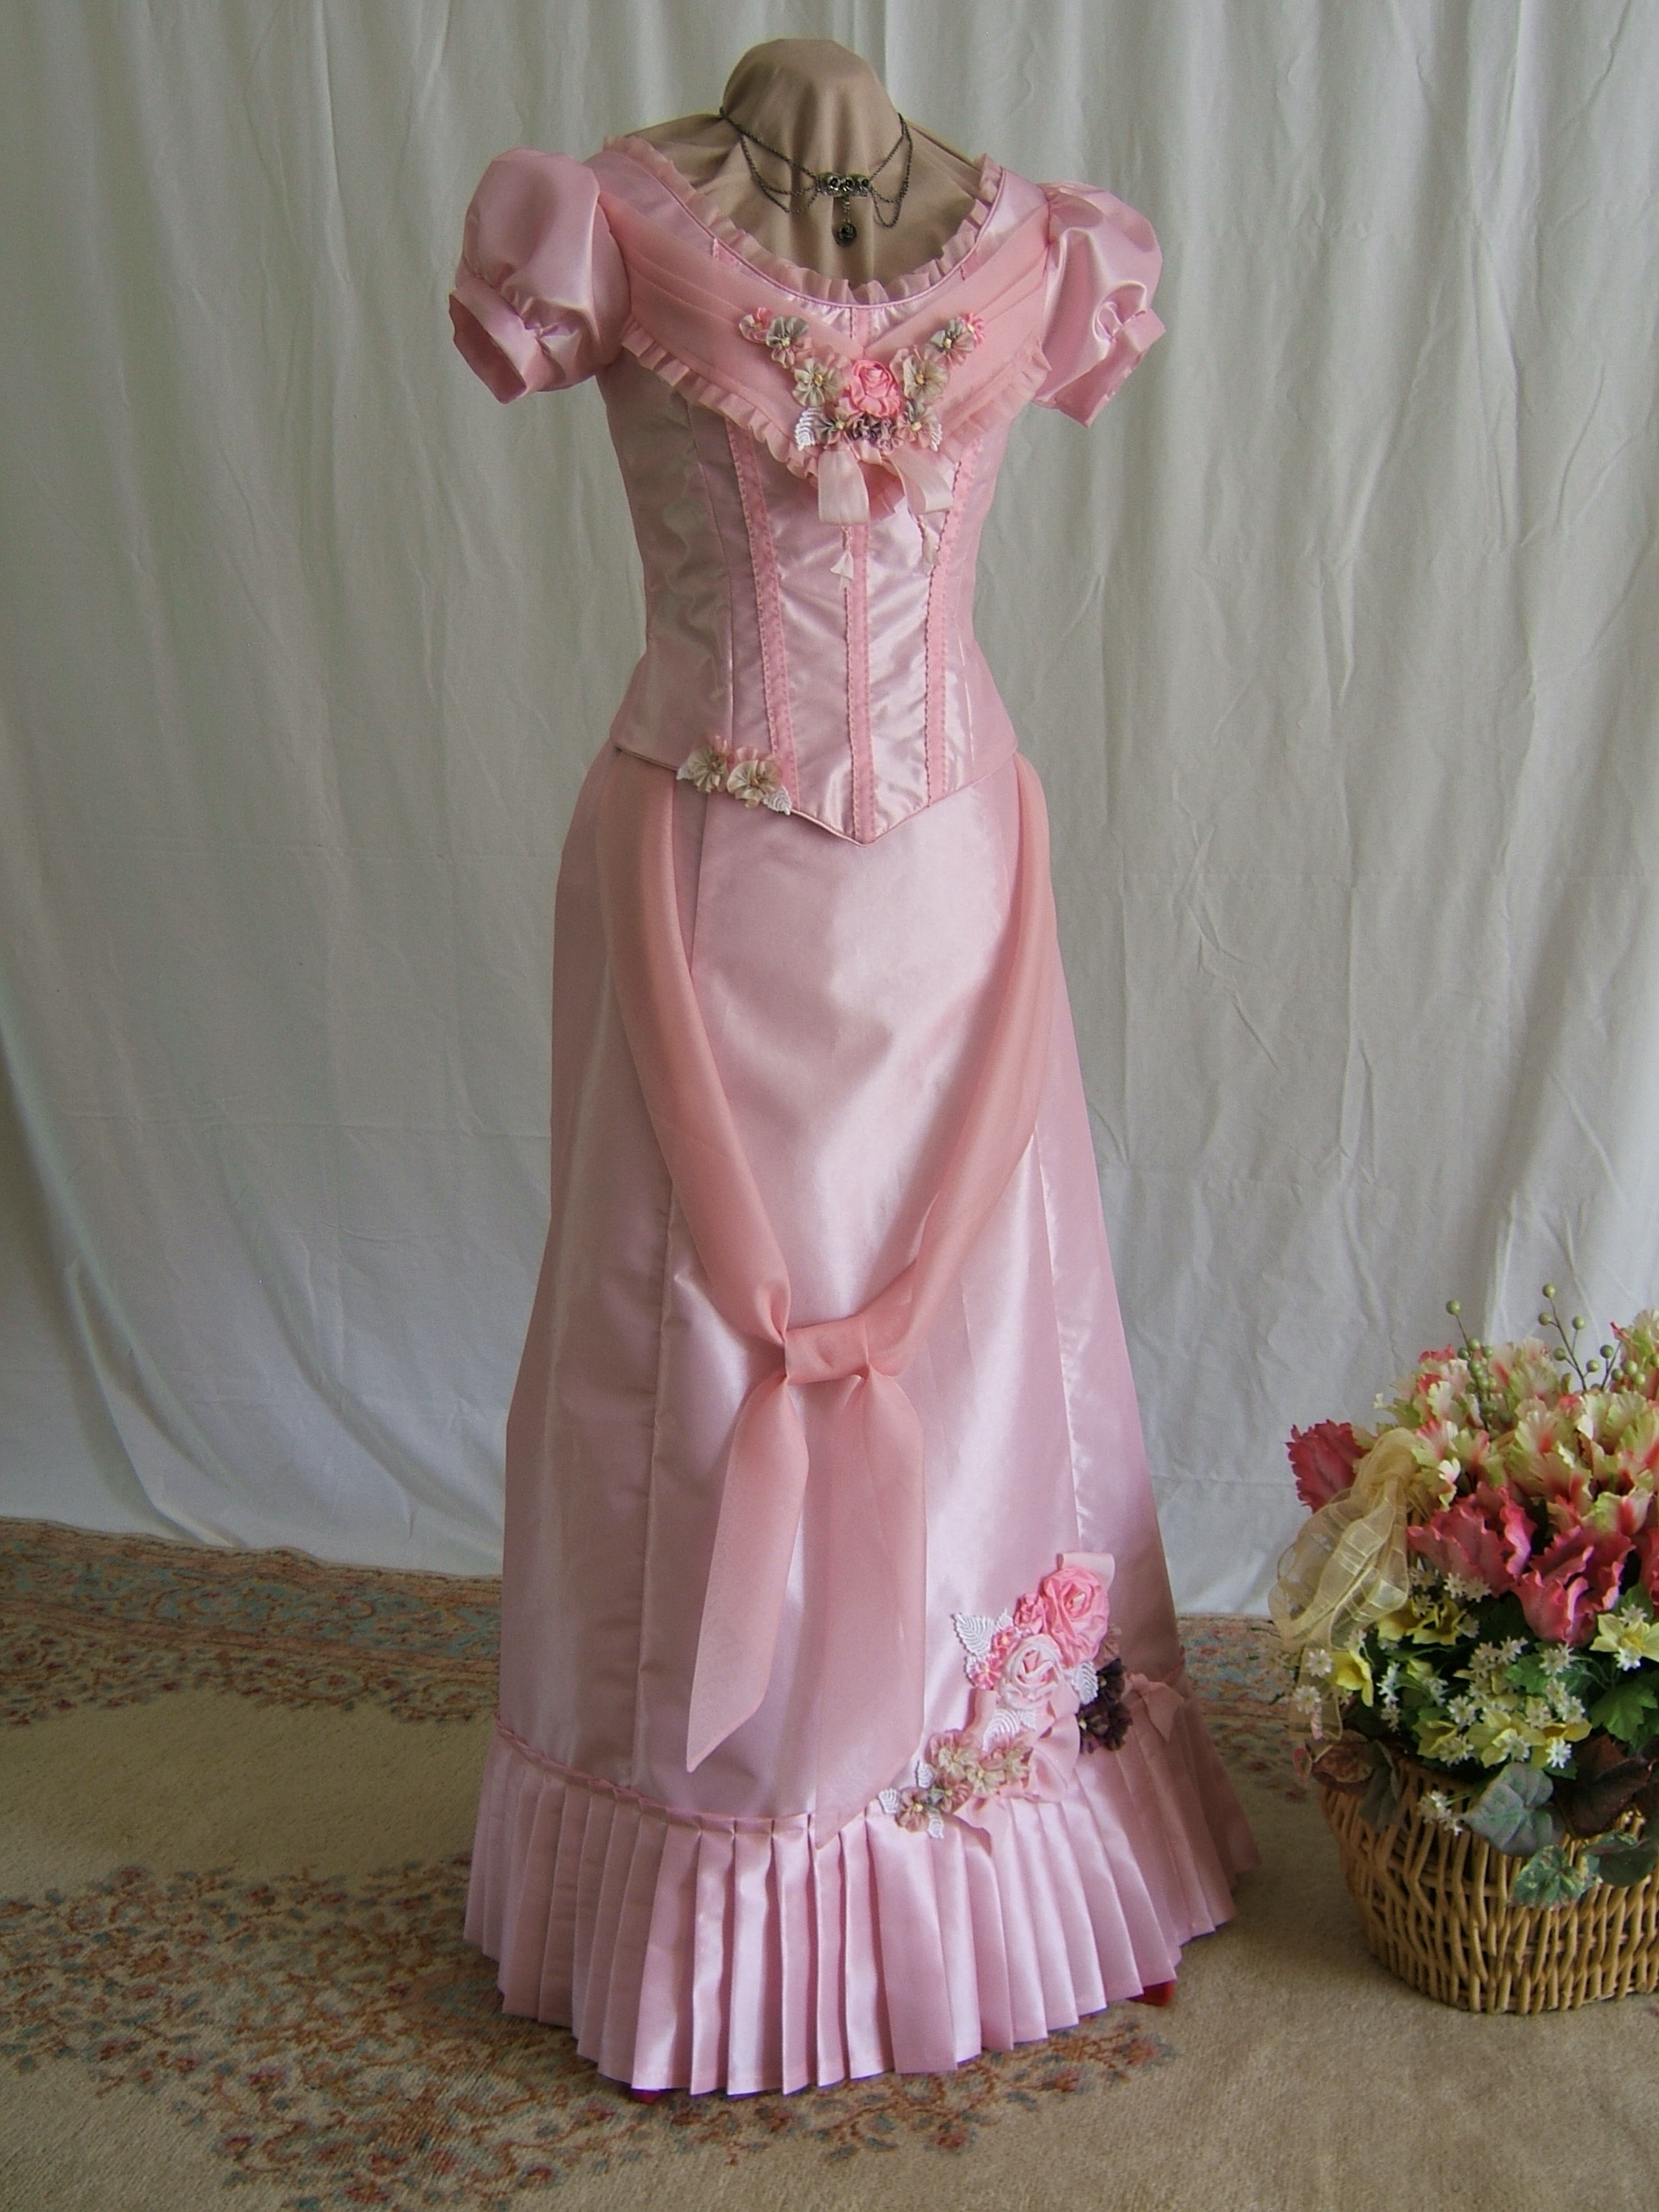 PRINCESS ROSELYN PINK BALL GOWN